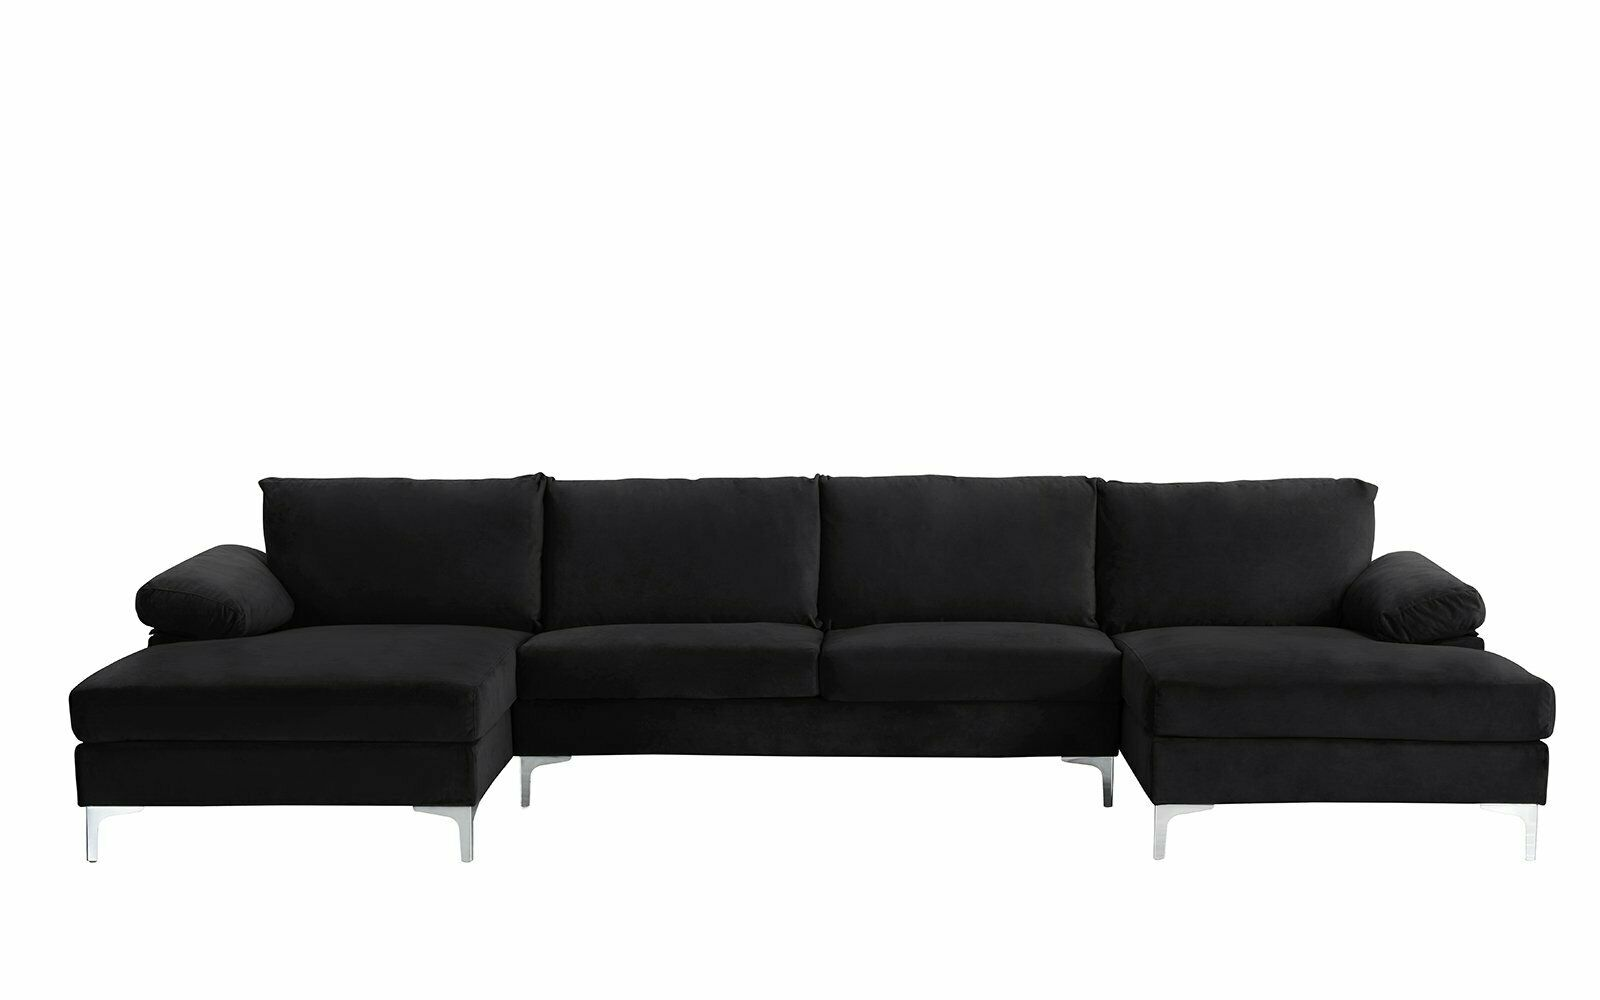 Picture of: Upholstered Black Velvet Scroll Arm Indoor Large Chaise Lounge Nailhead Trim For Sale Online Ebay